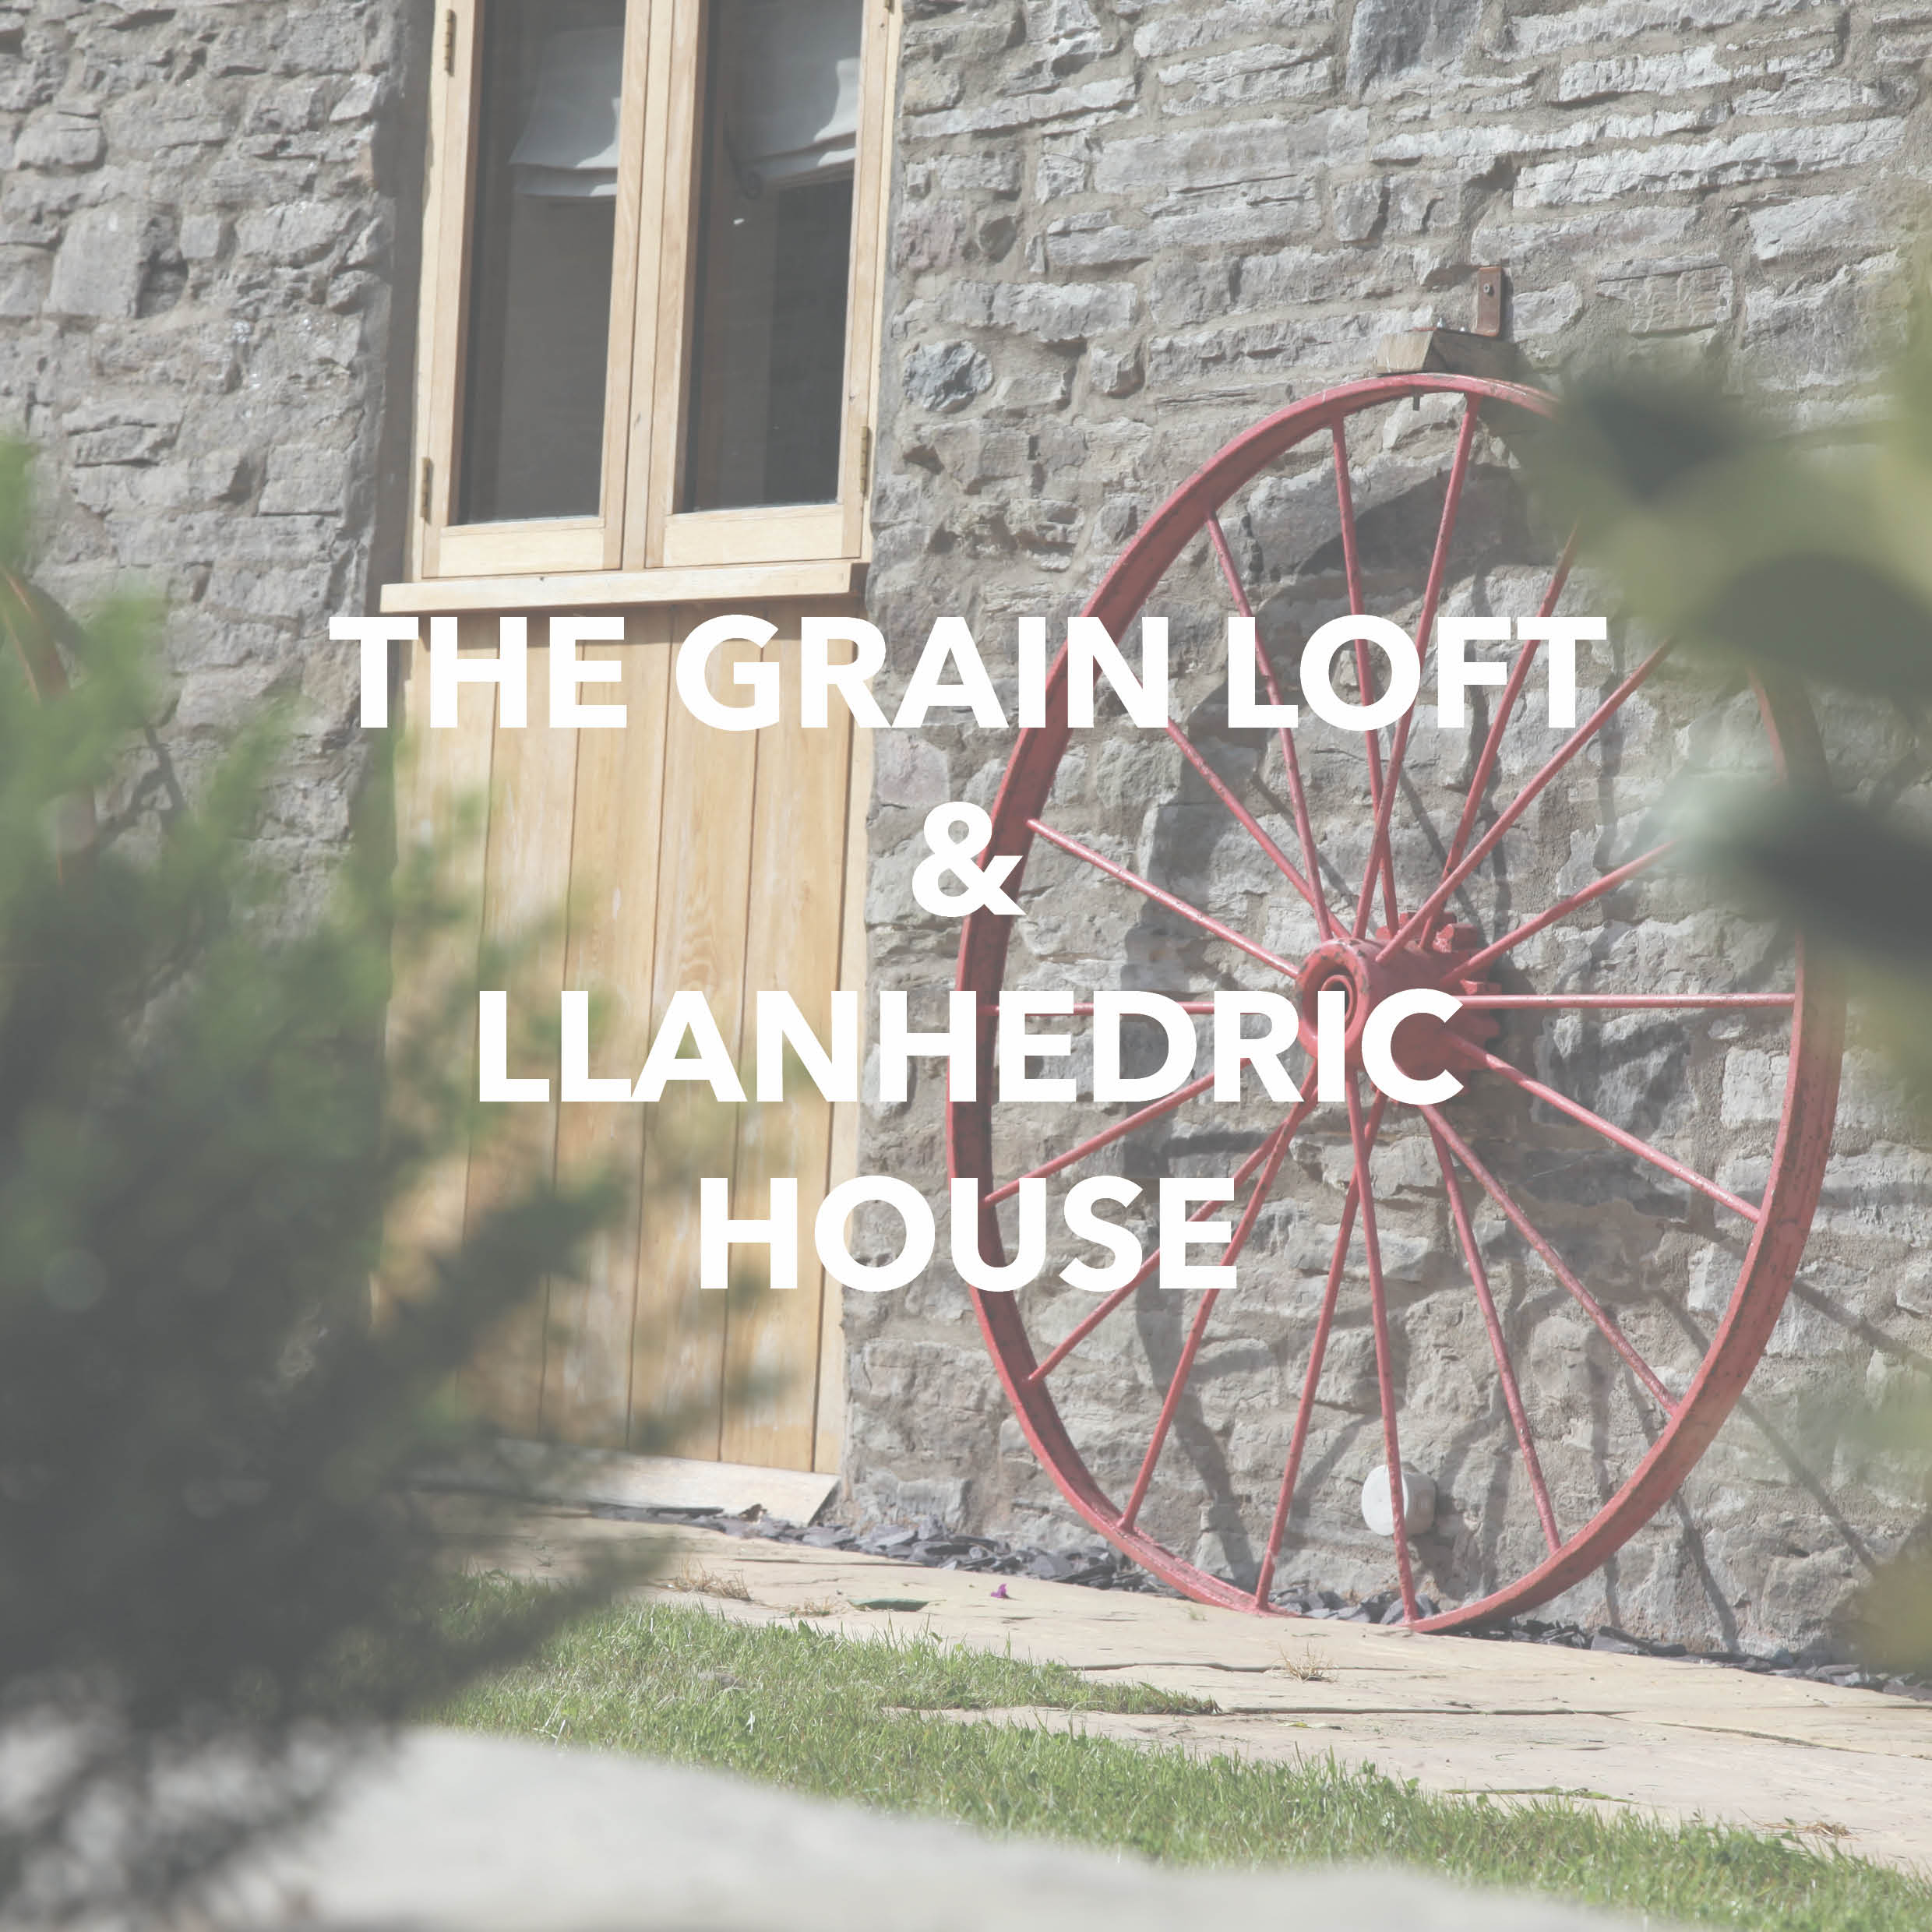 The Grain Loft is a beautiful barn that has been lovingly renovated to create an intimate holiday and wedding venue by owners, Elaine and Mark, and is adjacent to their already successful property Llanhedric House. We worked with the couple to develop and launch two new websites, a new brand, a rebrand and a collection of marketing materials